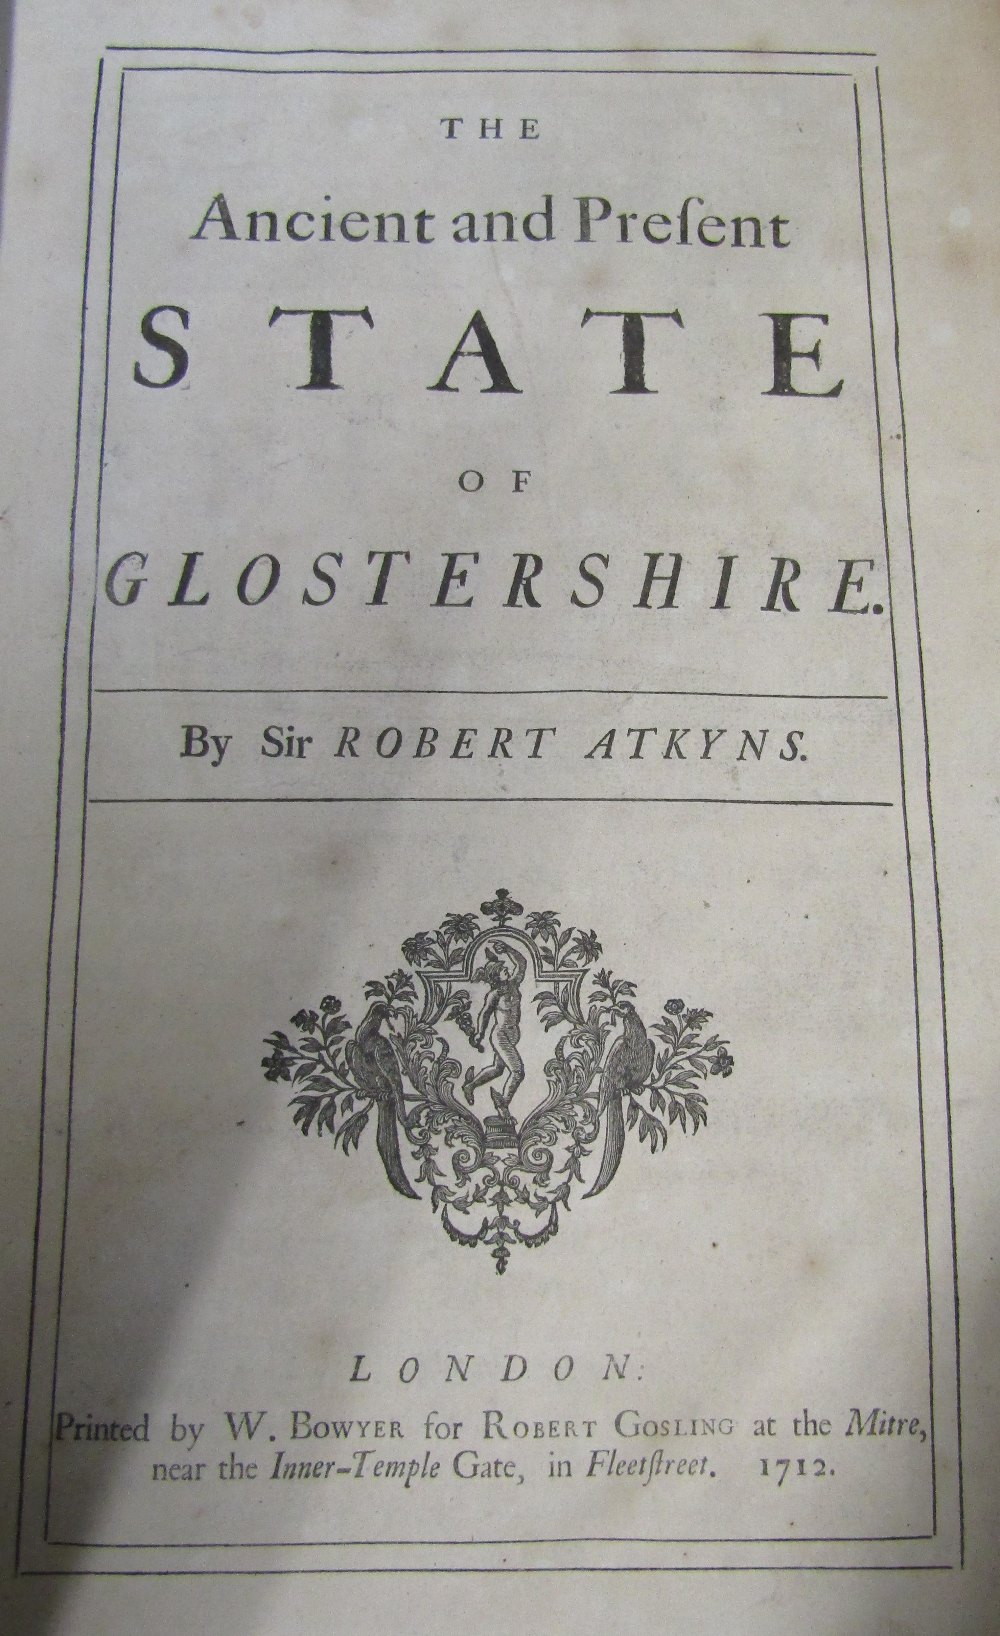 Lot 807 - ATKYNS Sir Robert - The Ancient and Present State of Gloucestershire, printed by W Bowyer 1712,